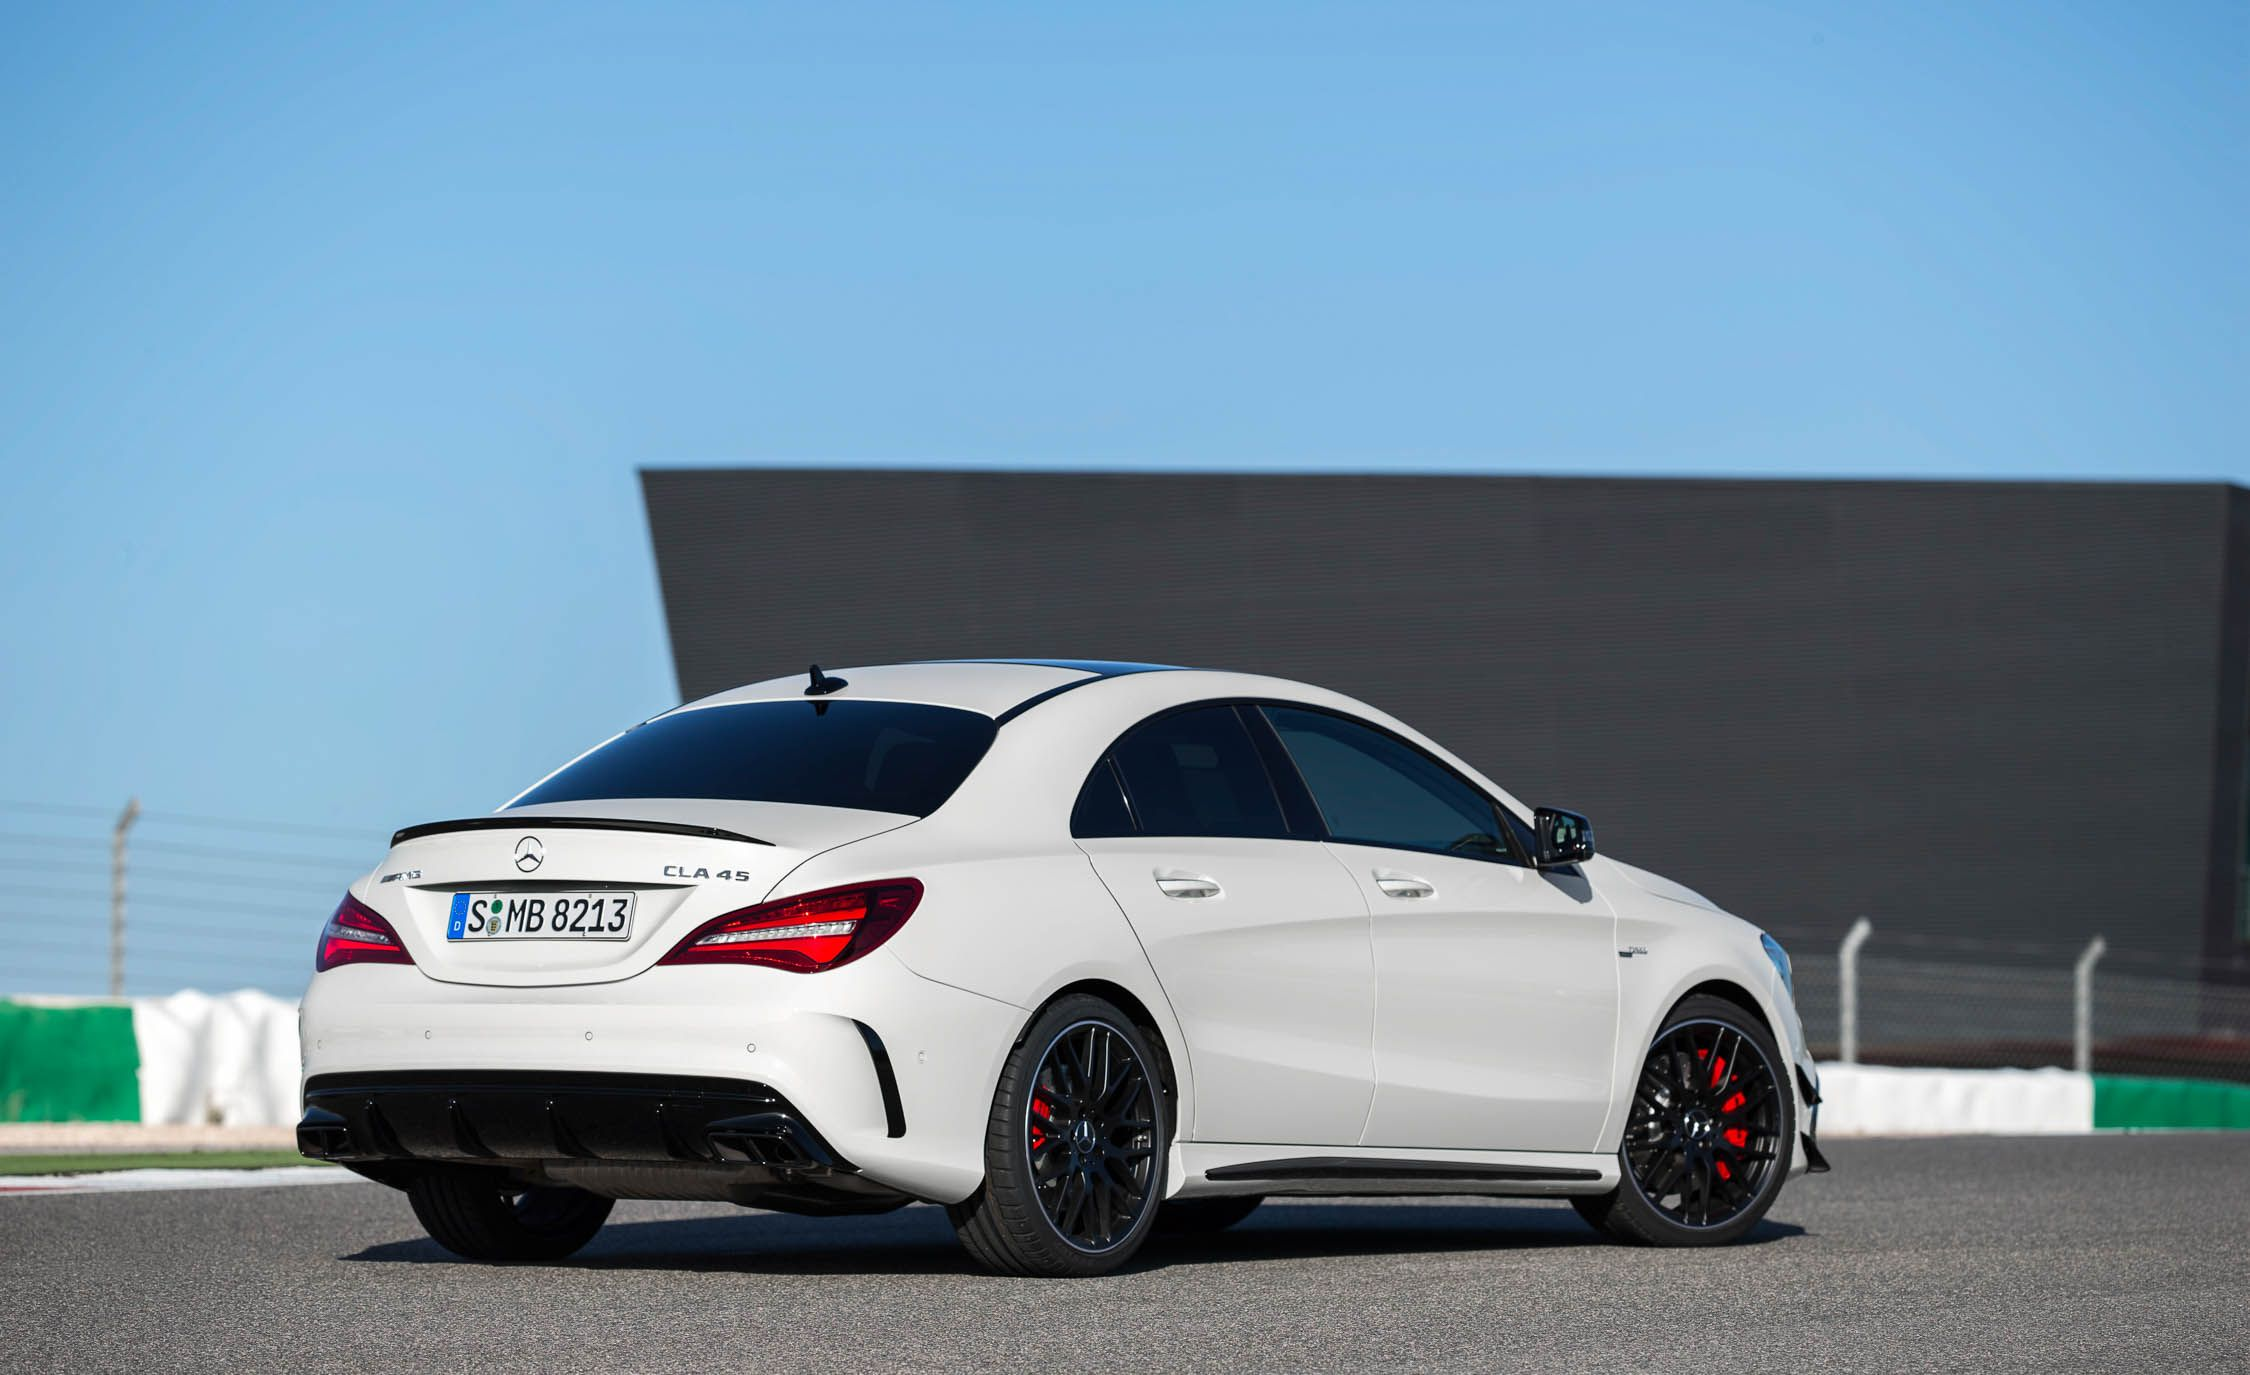 Mercedes cla45 amg 2017 best new cars for 2018 for Mercedes benz cla 45 price